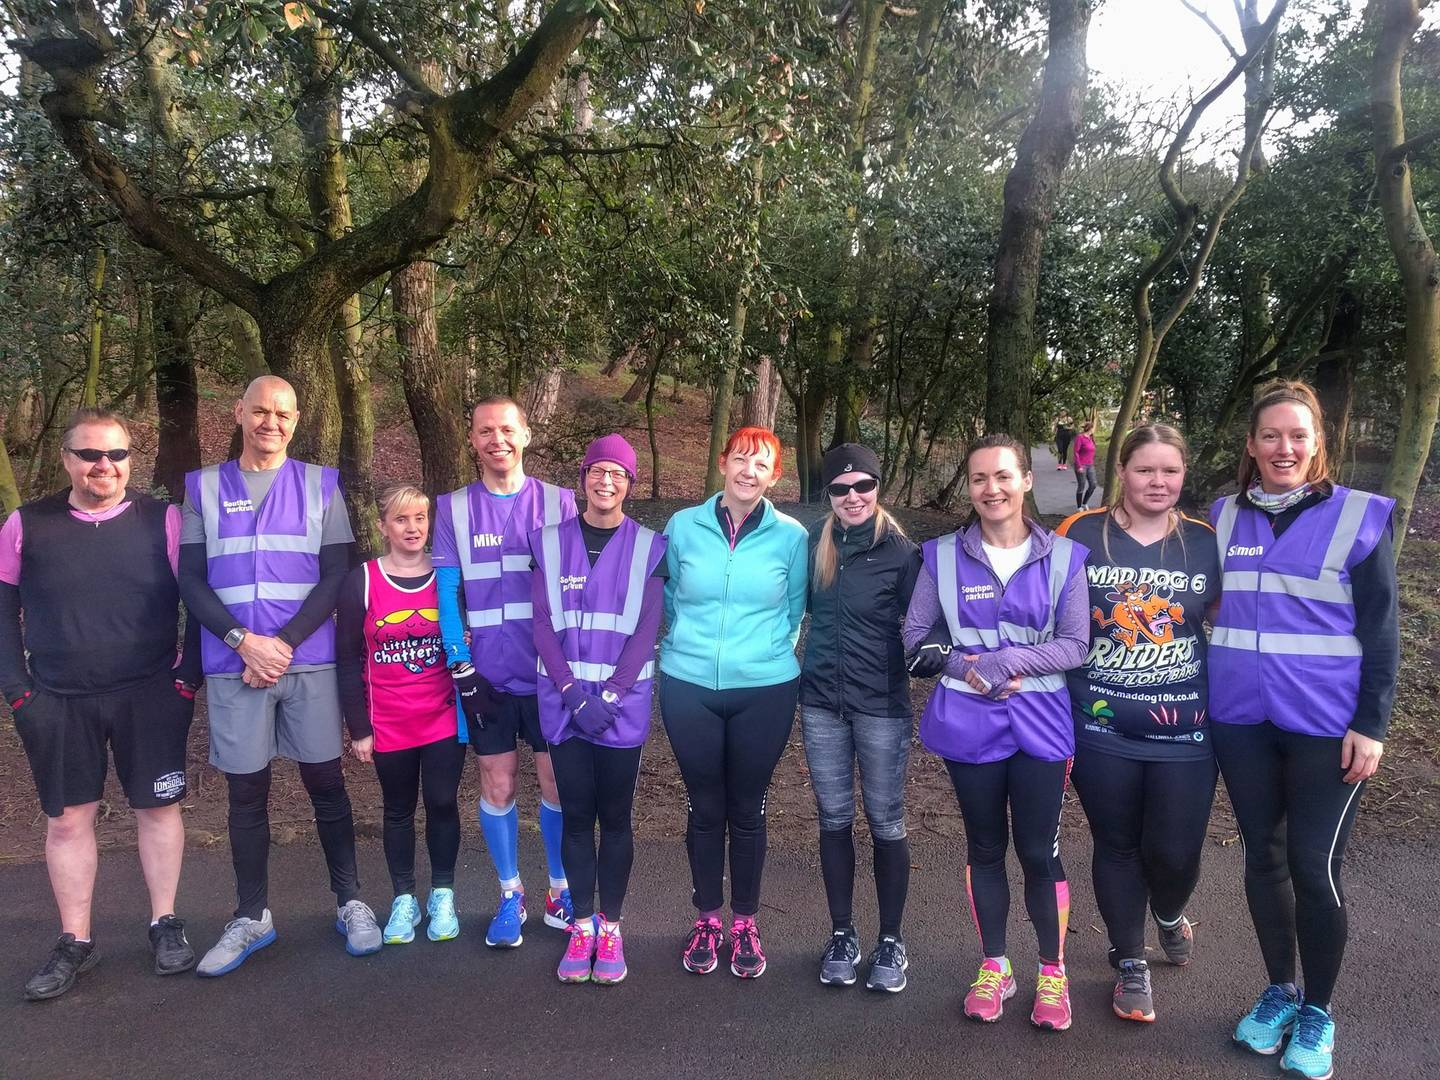 Members of the Southport parkrun group. Left to right: James and Terry (guide), Kelly and Mike (guide), Jen (guide) and Karen, Rachel (guide) and Catherine, Donna and Sarah (guide).